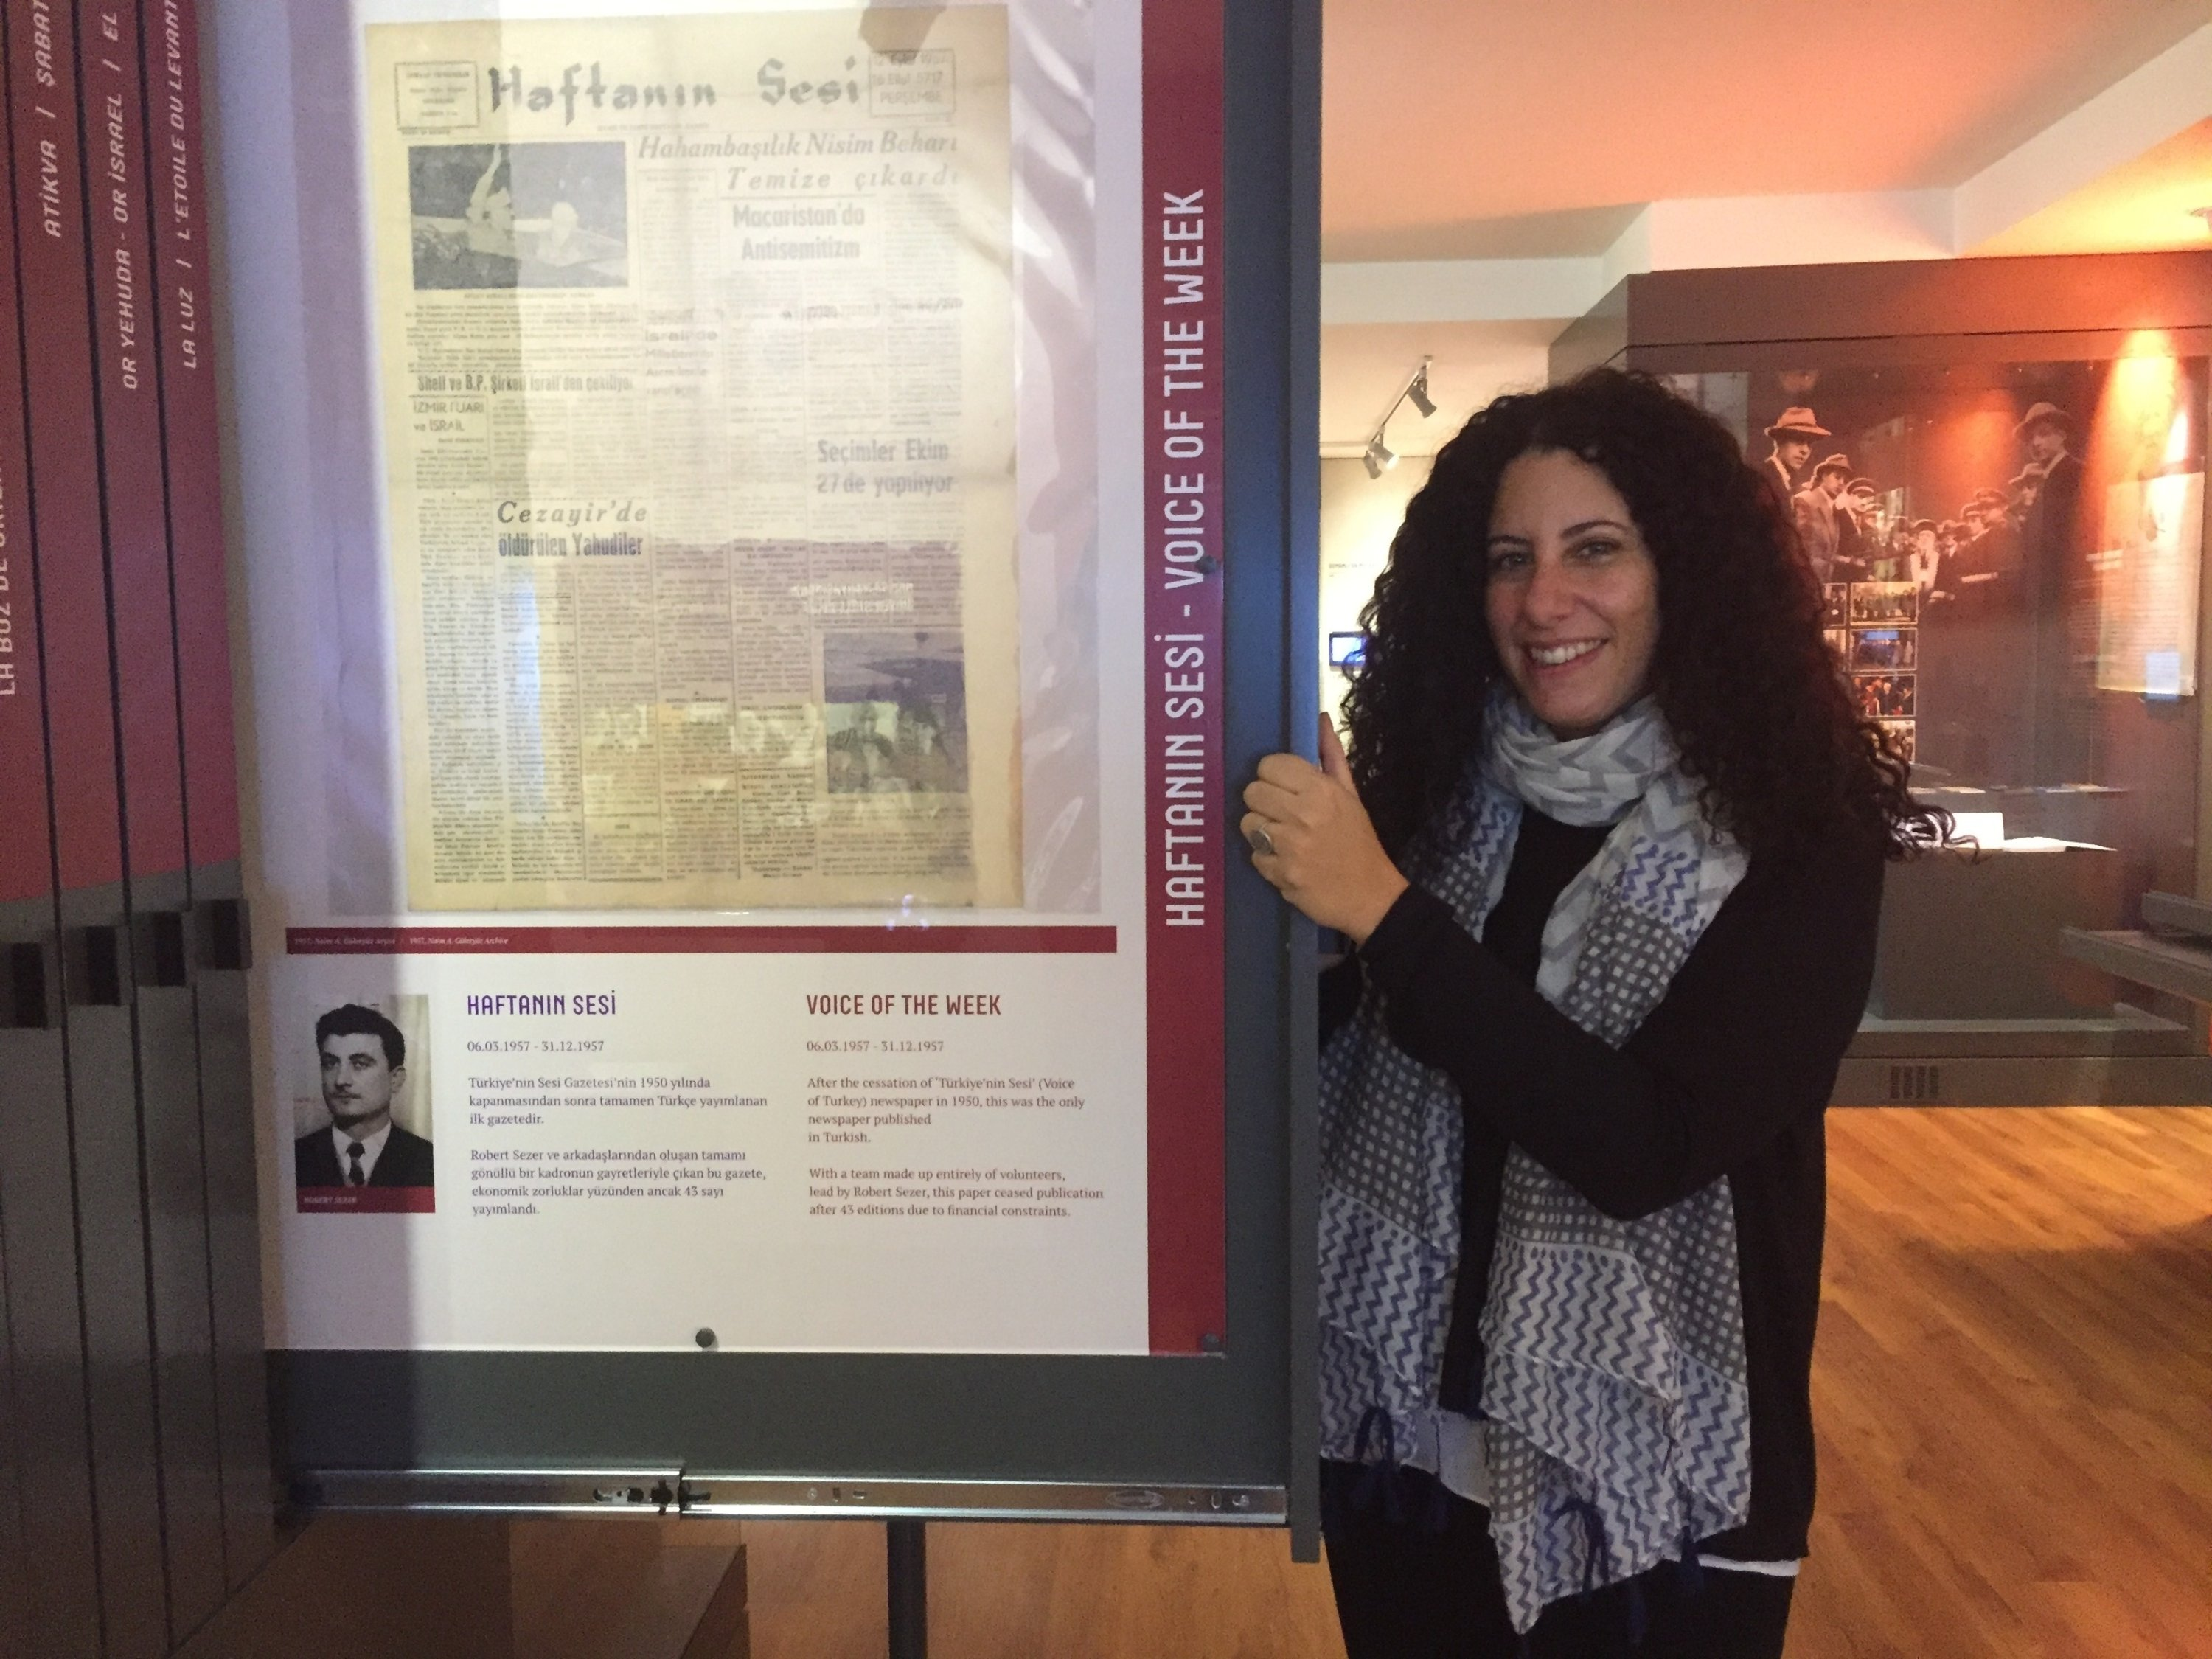 Nisya Isman Allovi, curator and director of the Jewish museum in Istanbul, Turkey, displays an old page from the Haftanin Sesi weekly newspaper. (Photo by Paris Achen)